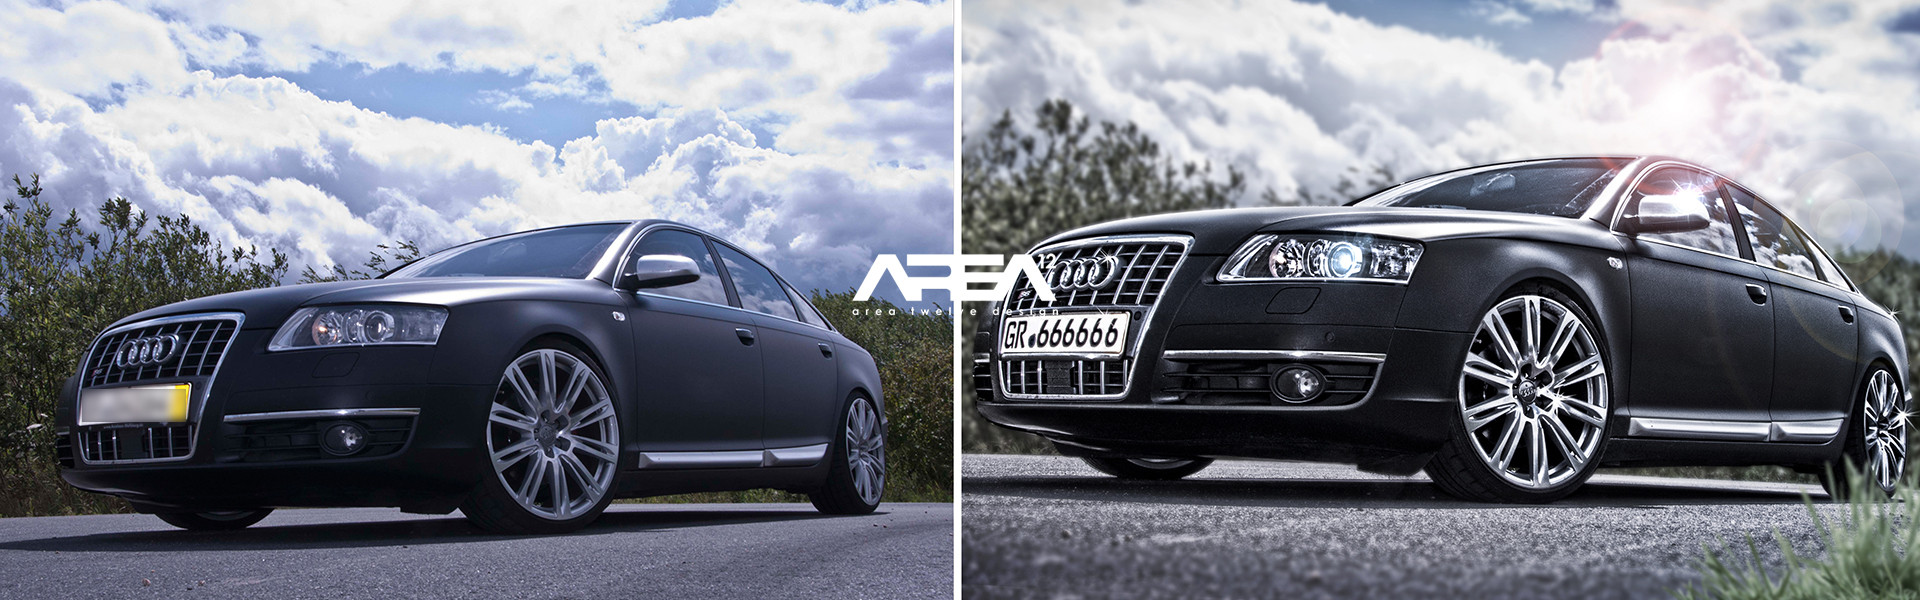 before_after_audis6